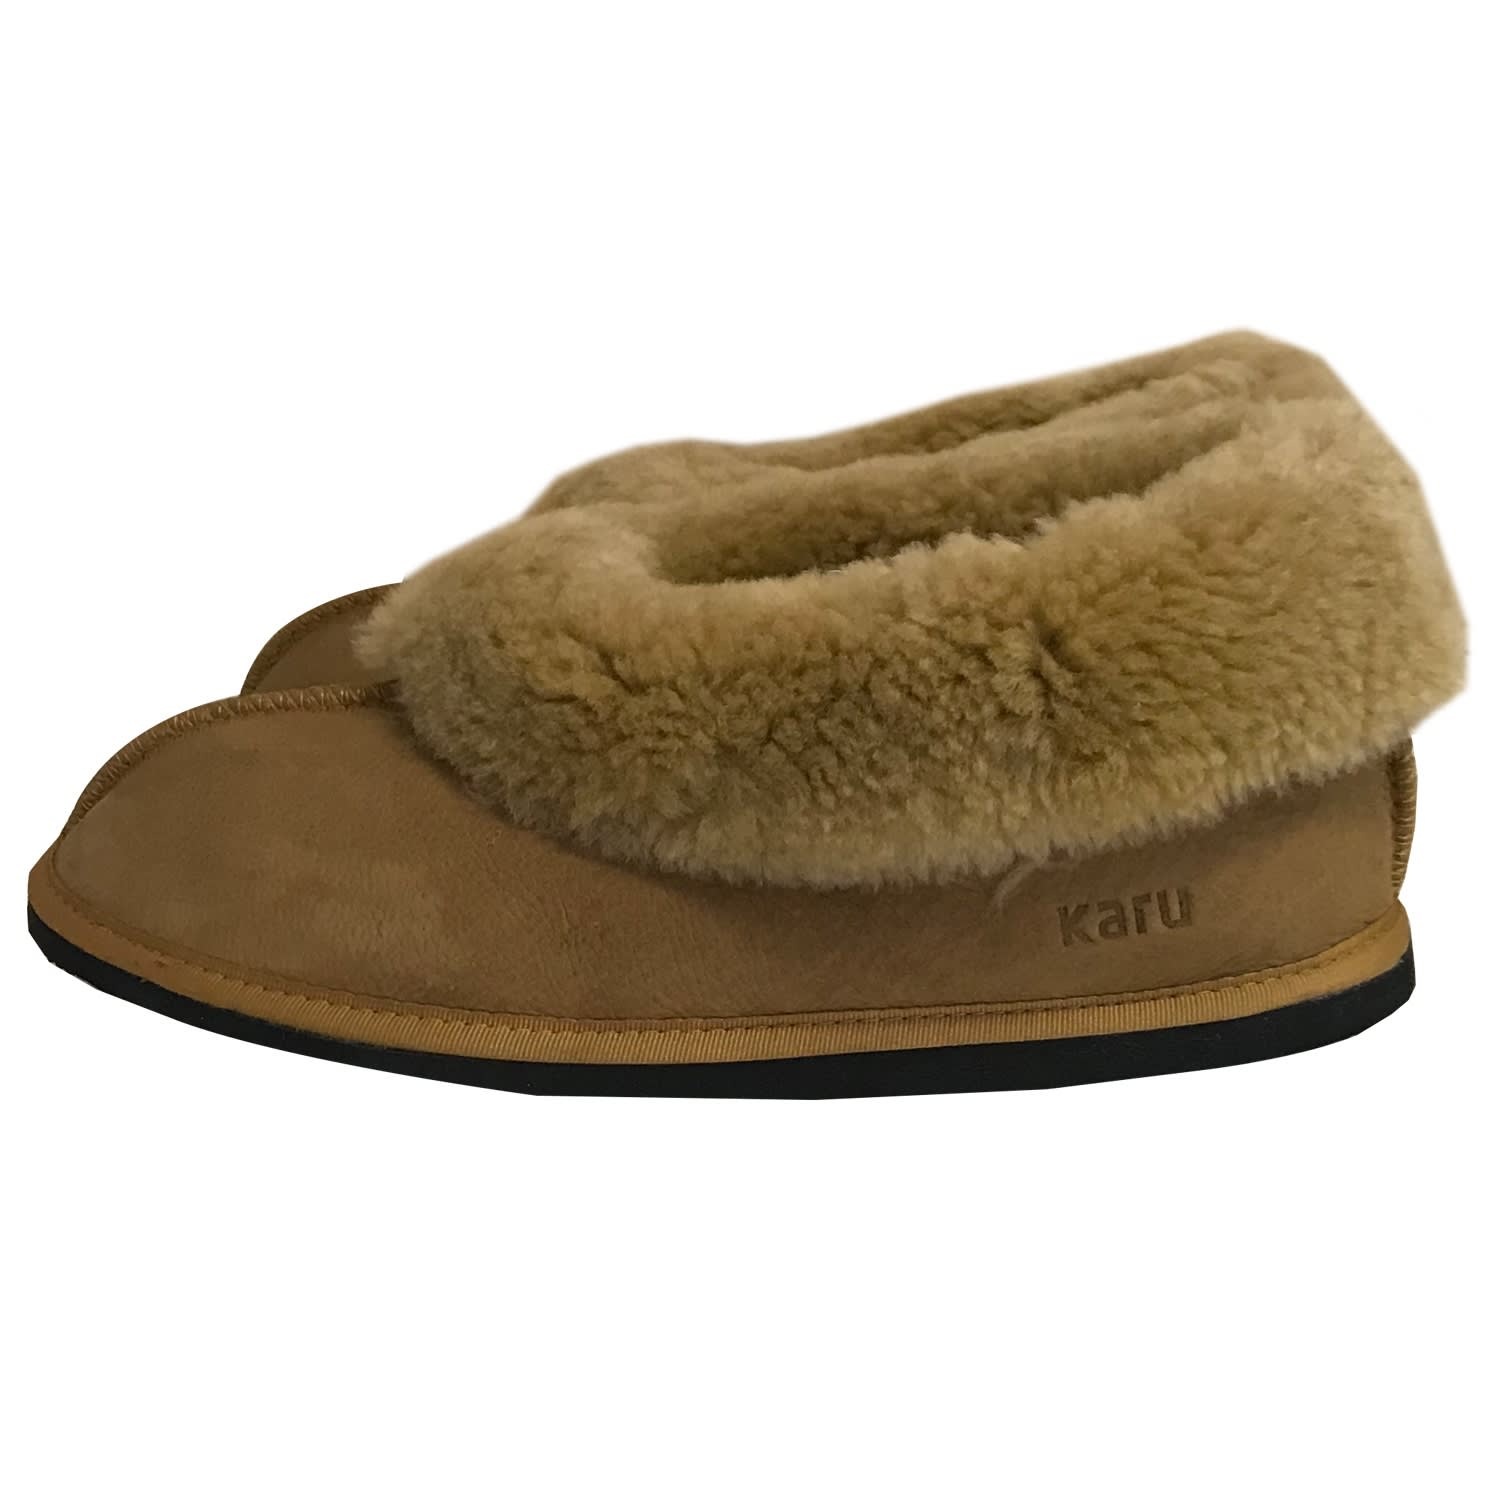 Karu Sheepskin Wool Slippers (Size: 3-7)